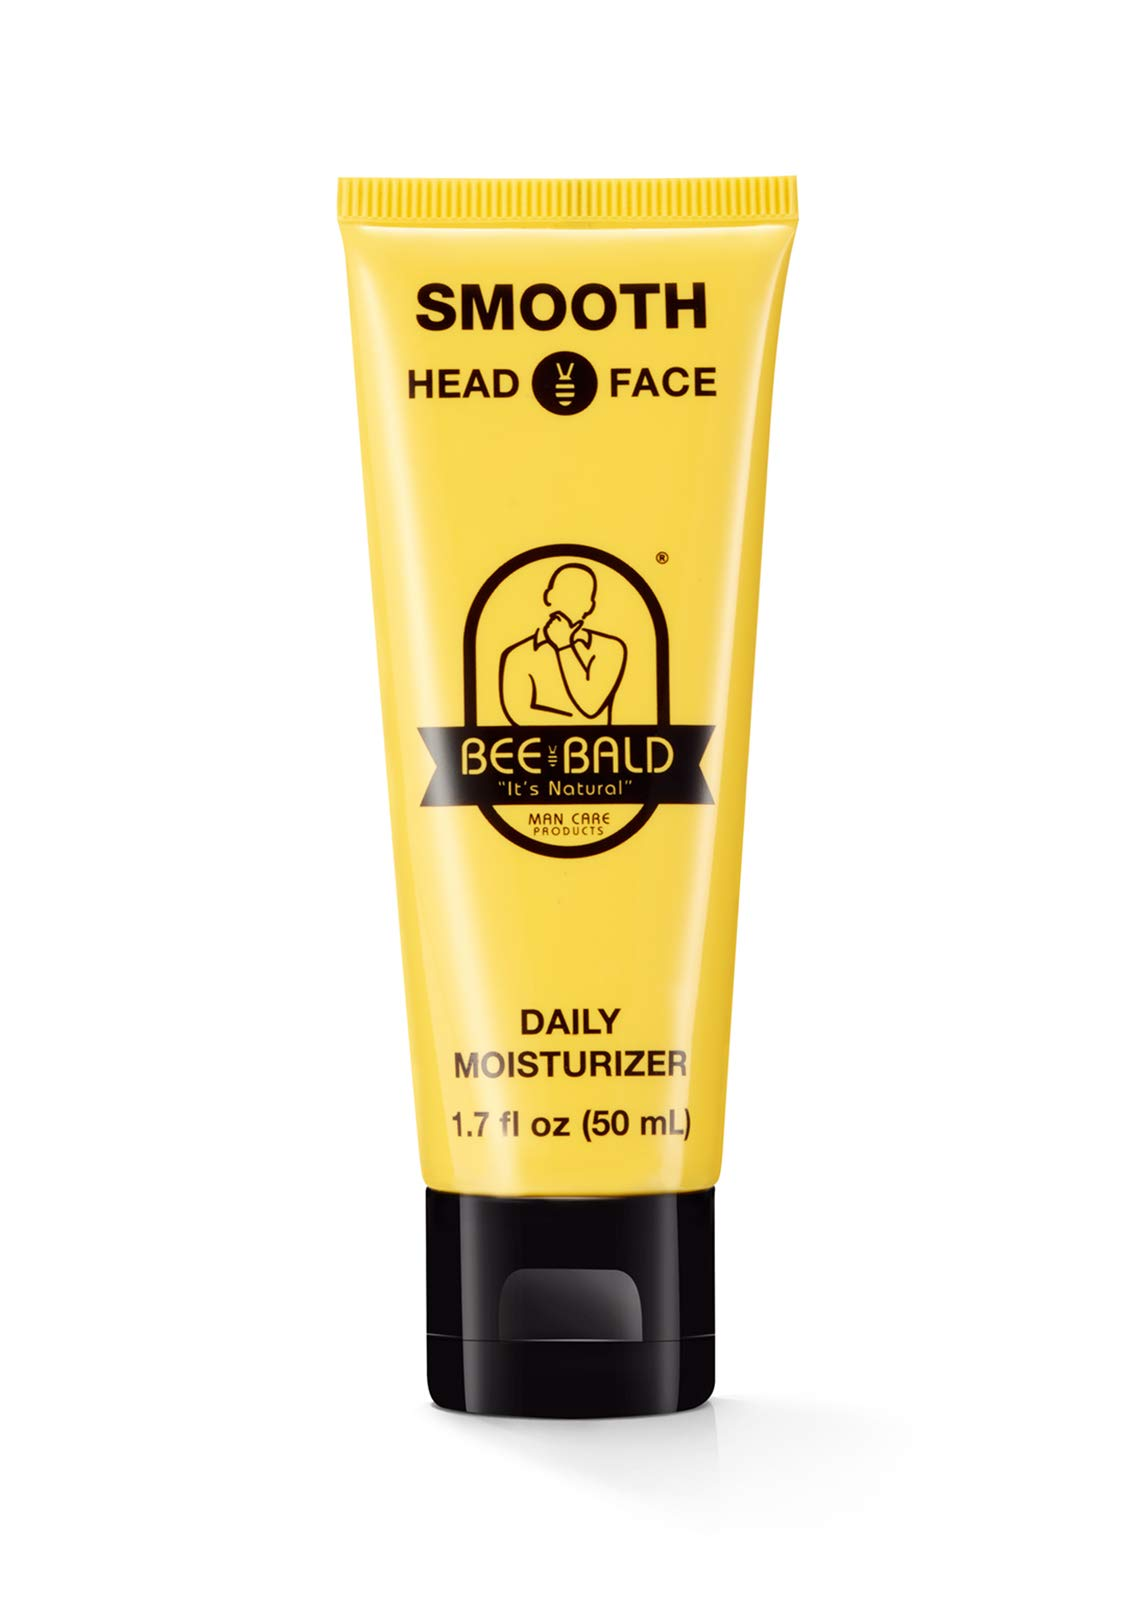 BEE BALD SMOOTH Daily Moisturizer tones, hydrates and moisturizes, smoothing away fine lines, wrinkles and dry patches and helps control oil and shine to feel cool, fresh and comfortable, 1.7 Fl. Oz.